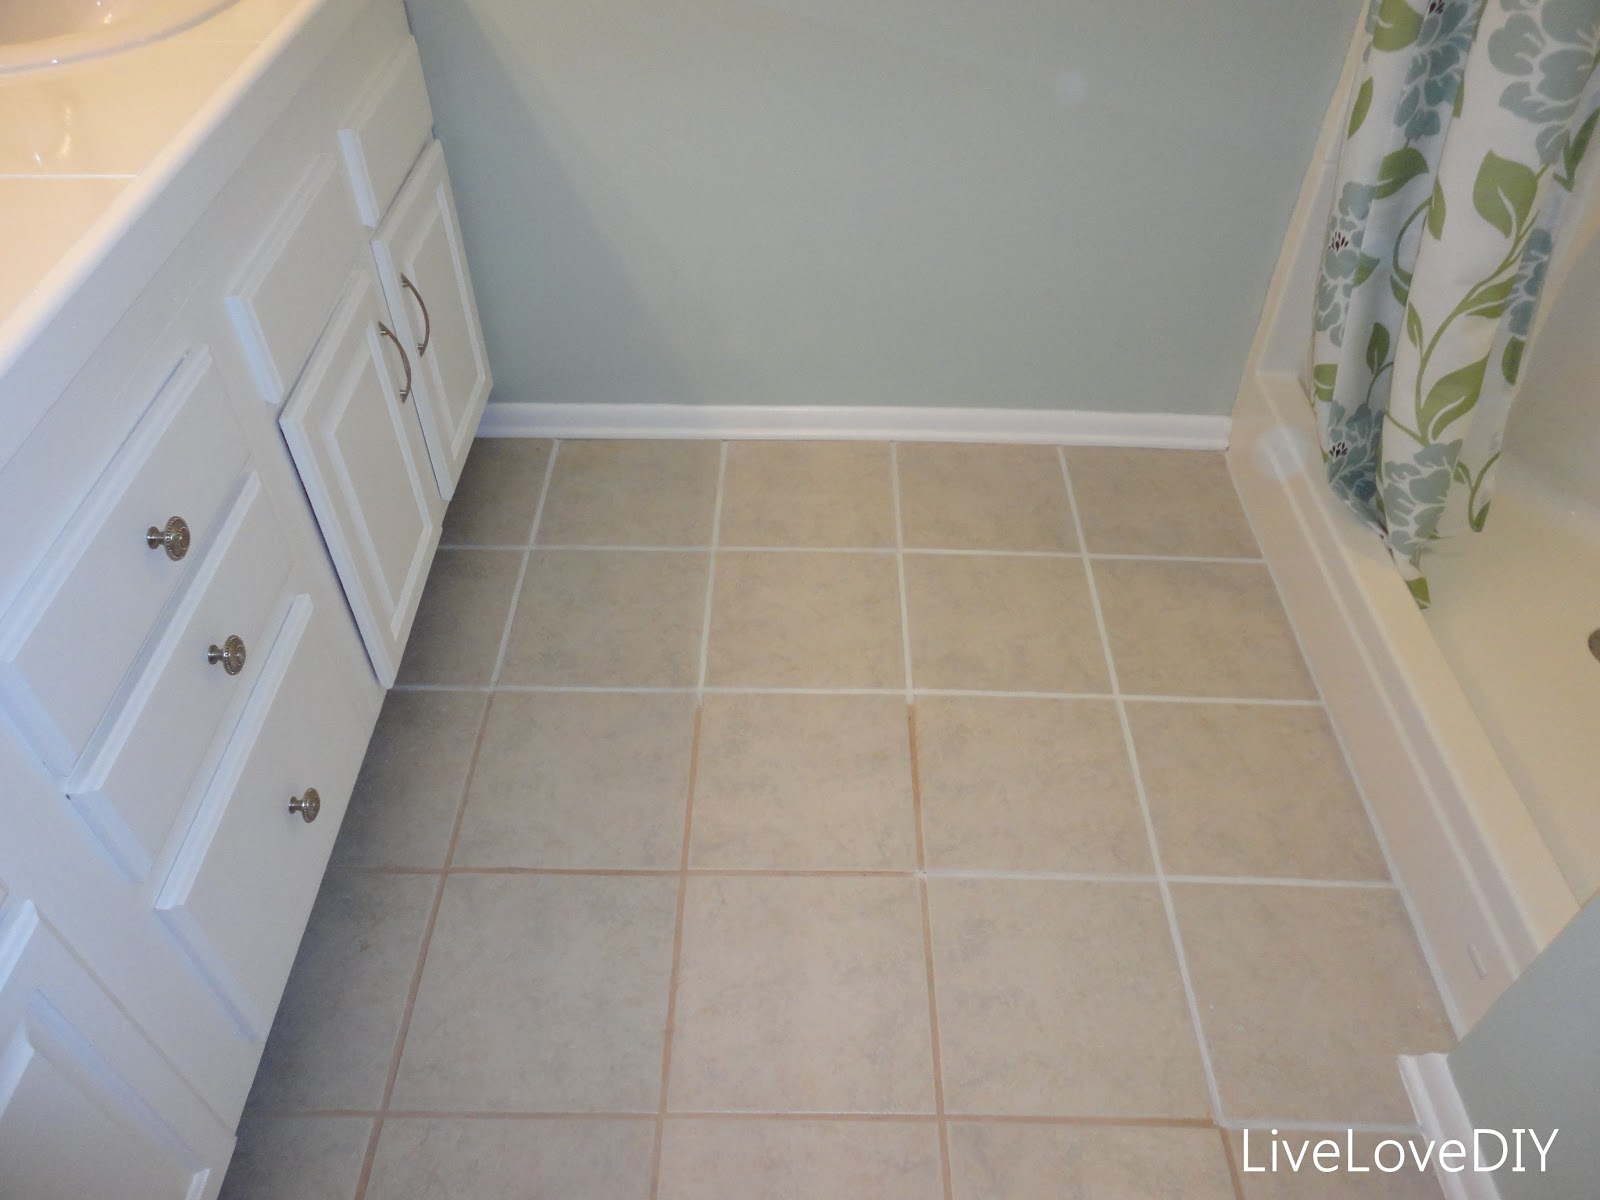 Livelovediy how to restore dirty tile grout to dailygadgetfo Images